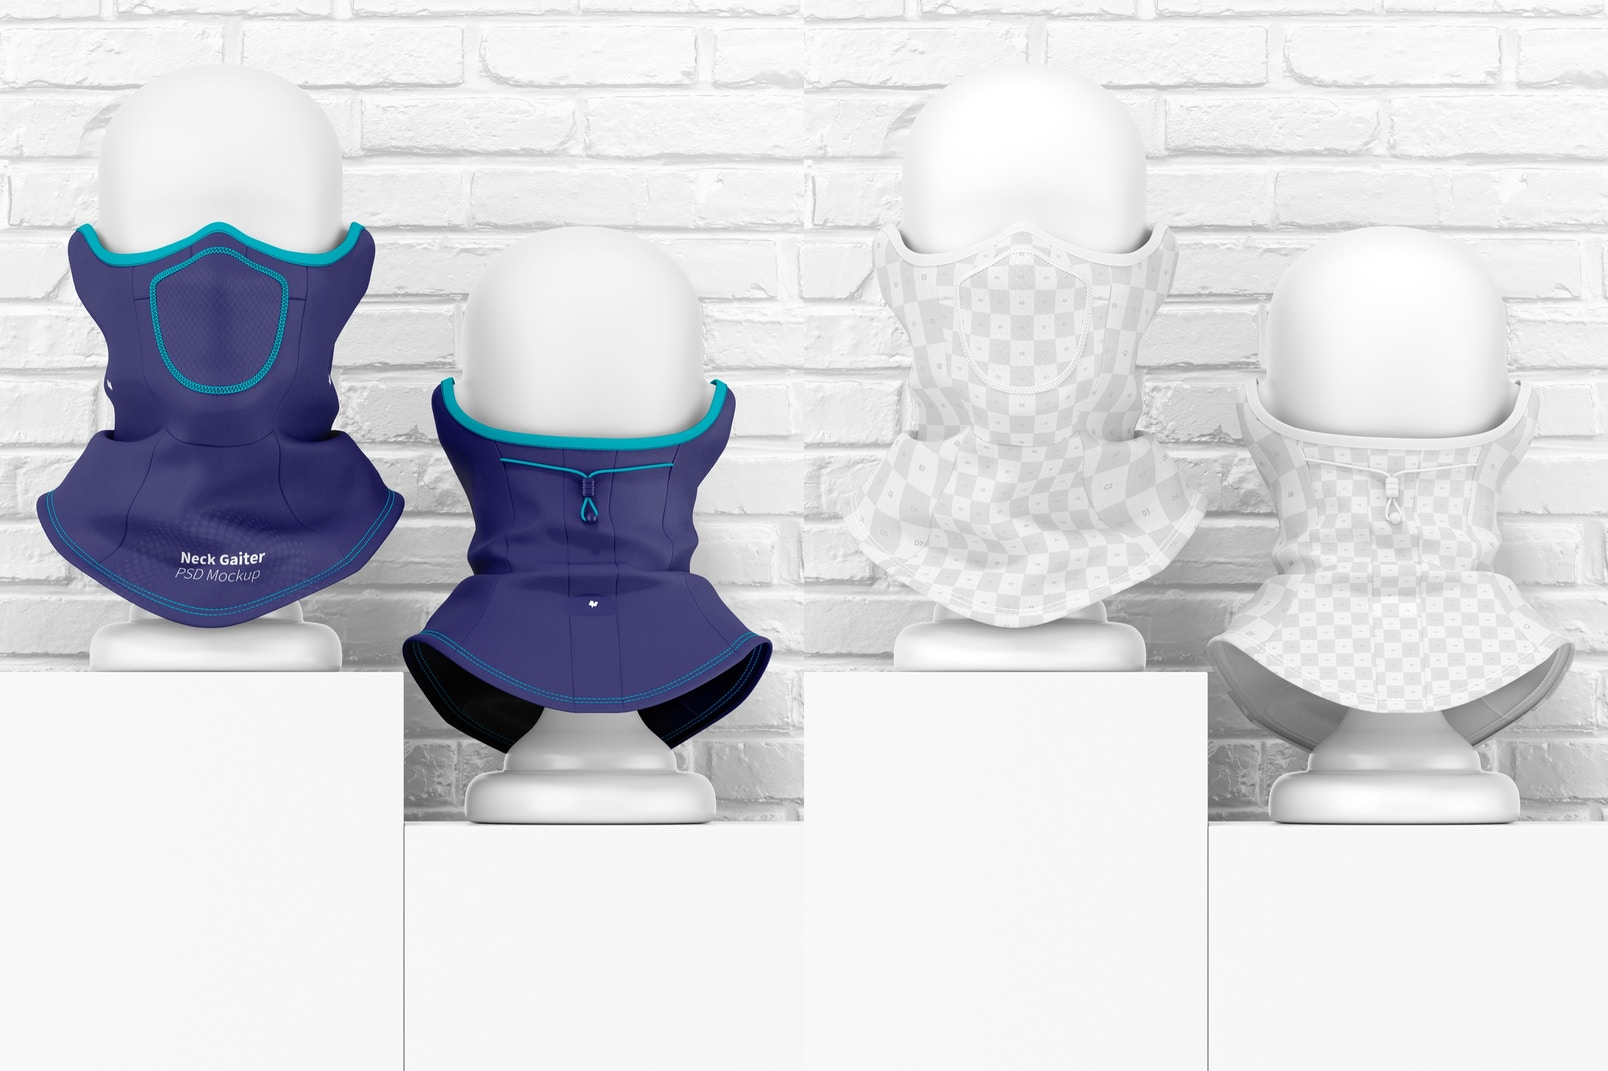 Neck Gaiters Mockup, Front and Back View